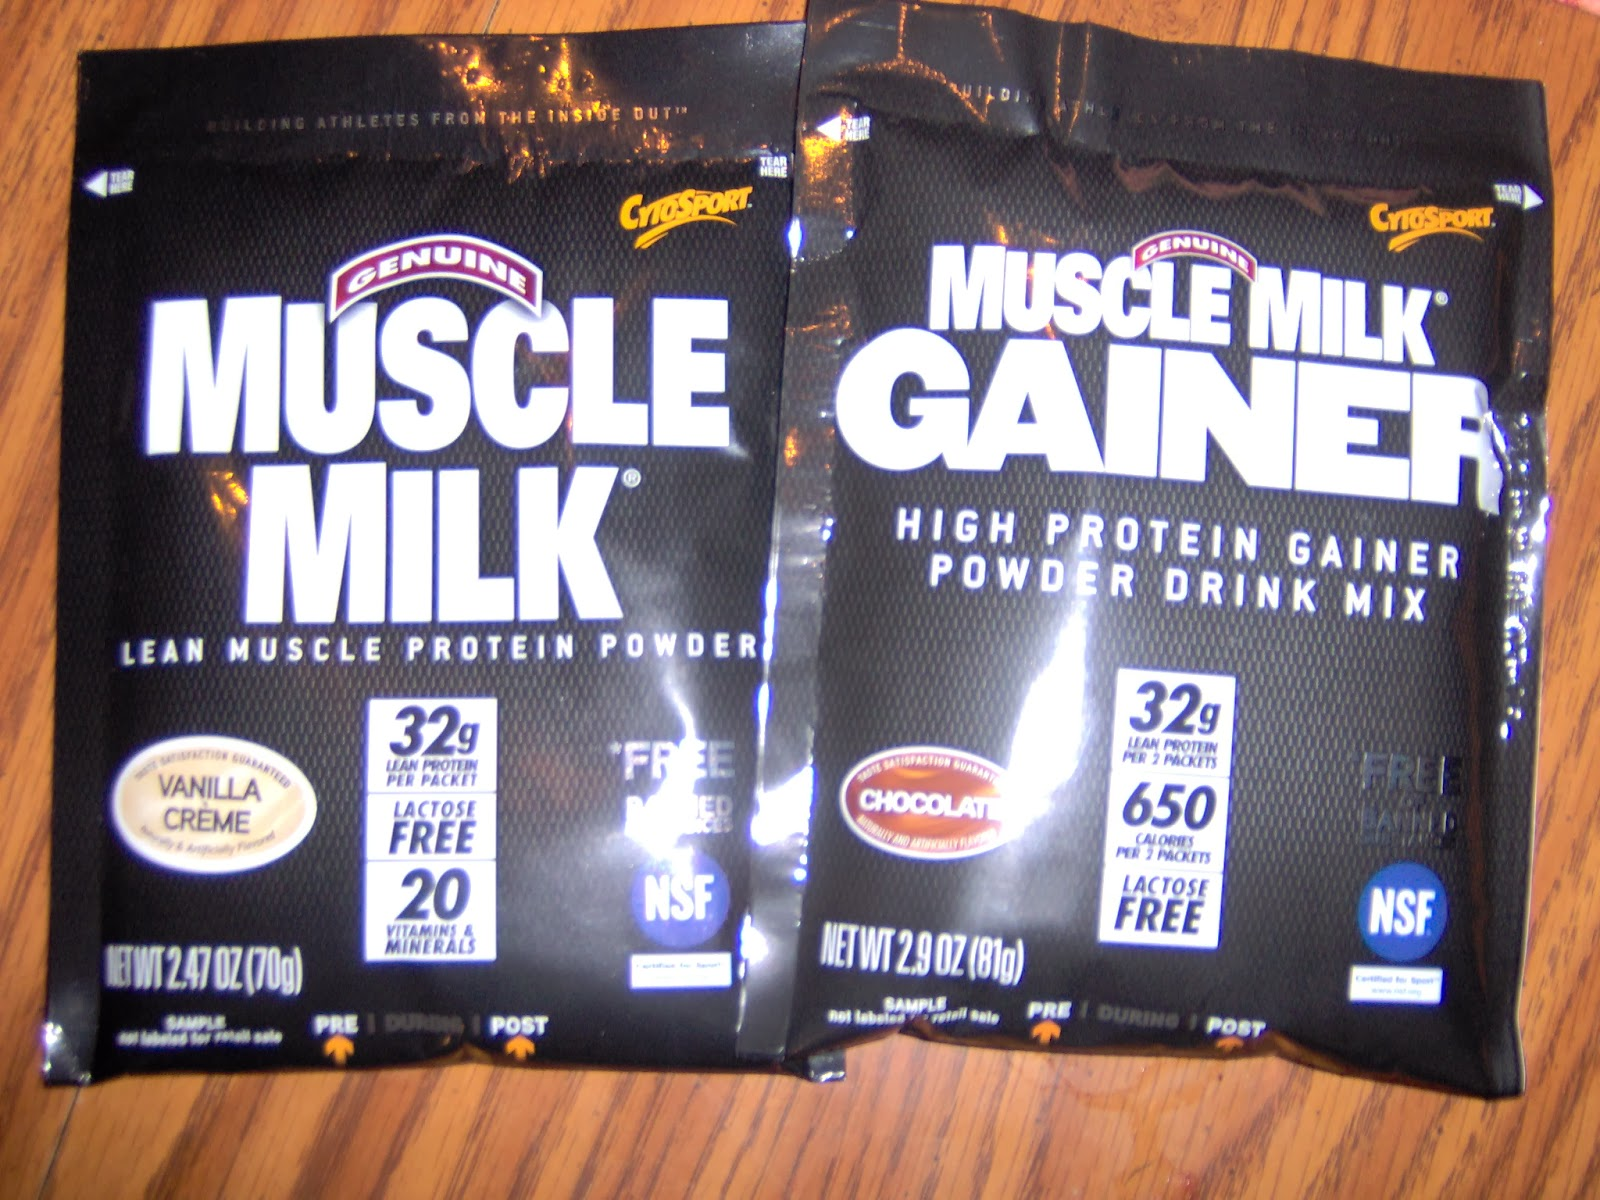 Review - Muscle Milk